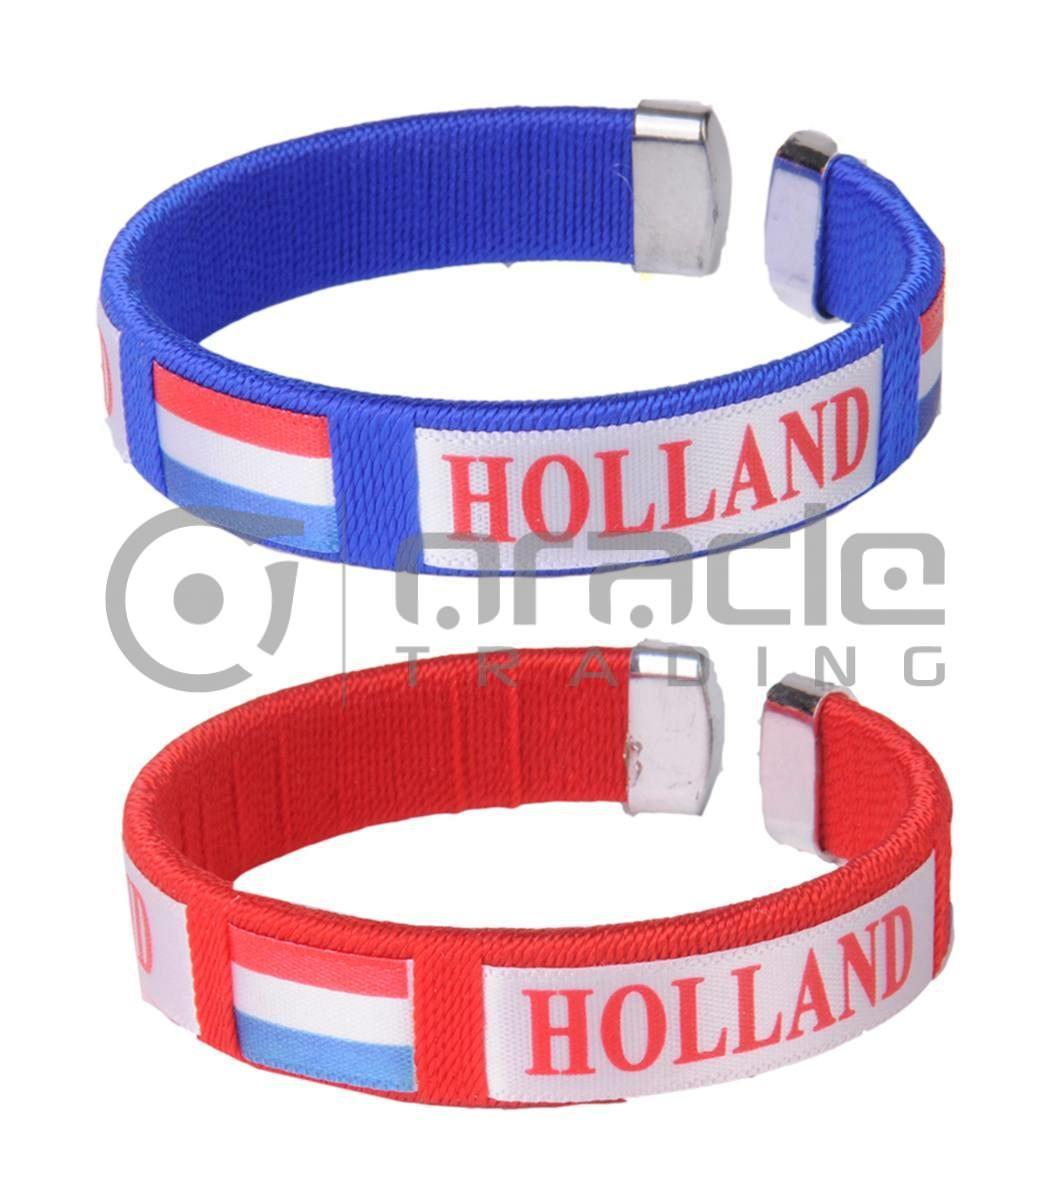 Holland C Bracelets Red/Blue 12-Pack